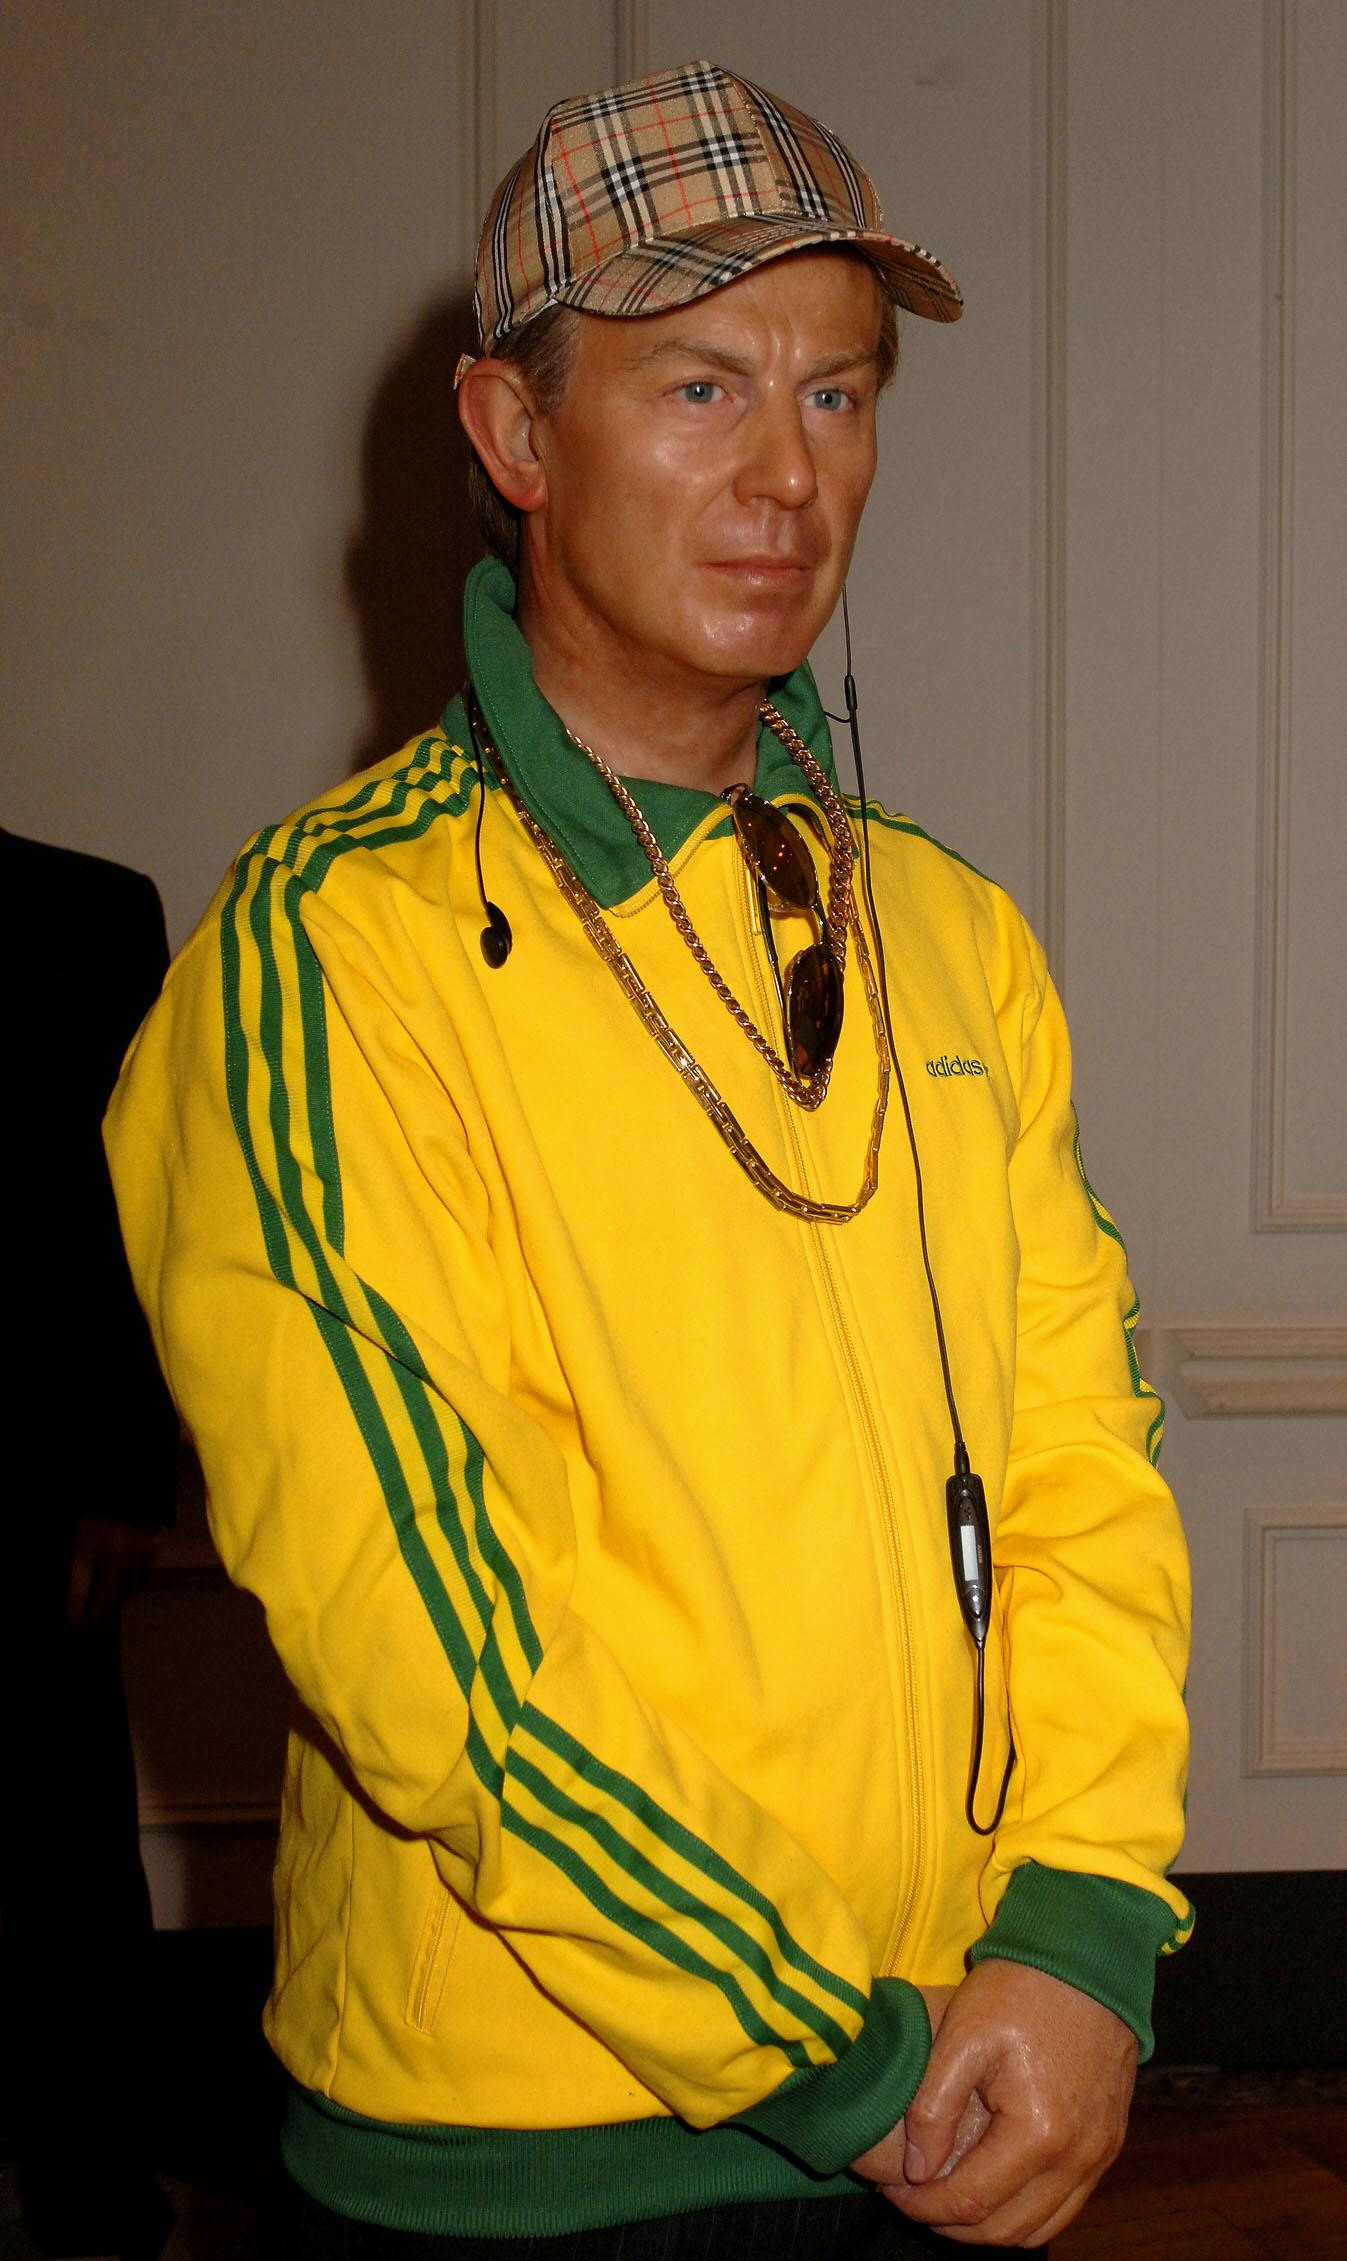 Tony Blair's wax work figure at Madame Tussauds wearing a tracksuit and Burberry baseball cap